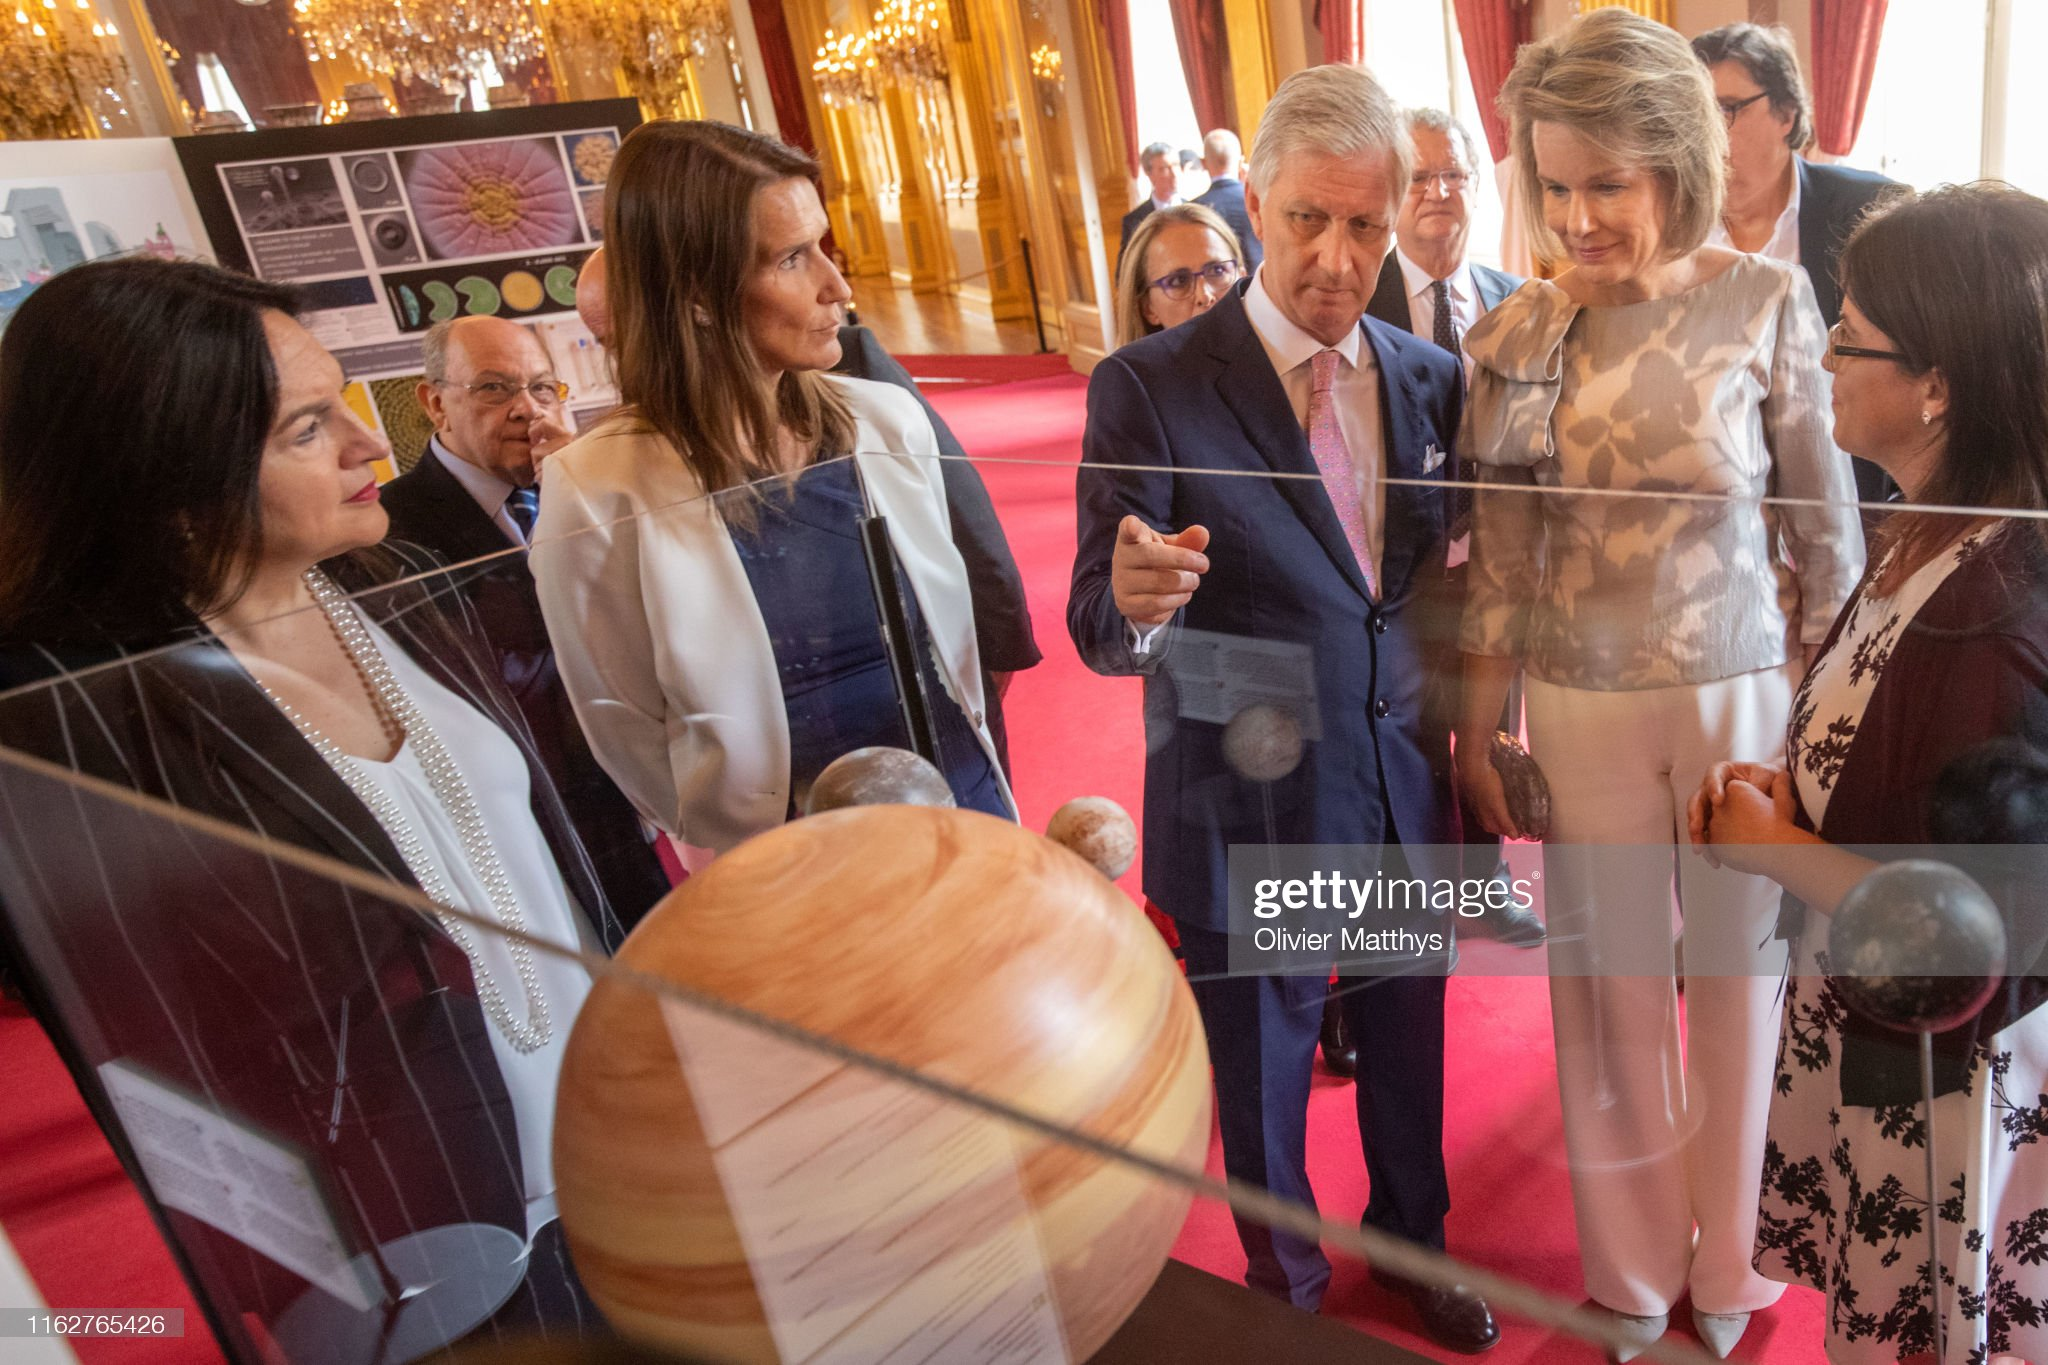 CASA REAL BELGA - Página 54 King-philippe-of-belgium-and-queen-mathilde-attend-the-moon-landing-picture-id1162765426?s=2048x2048